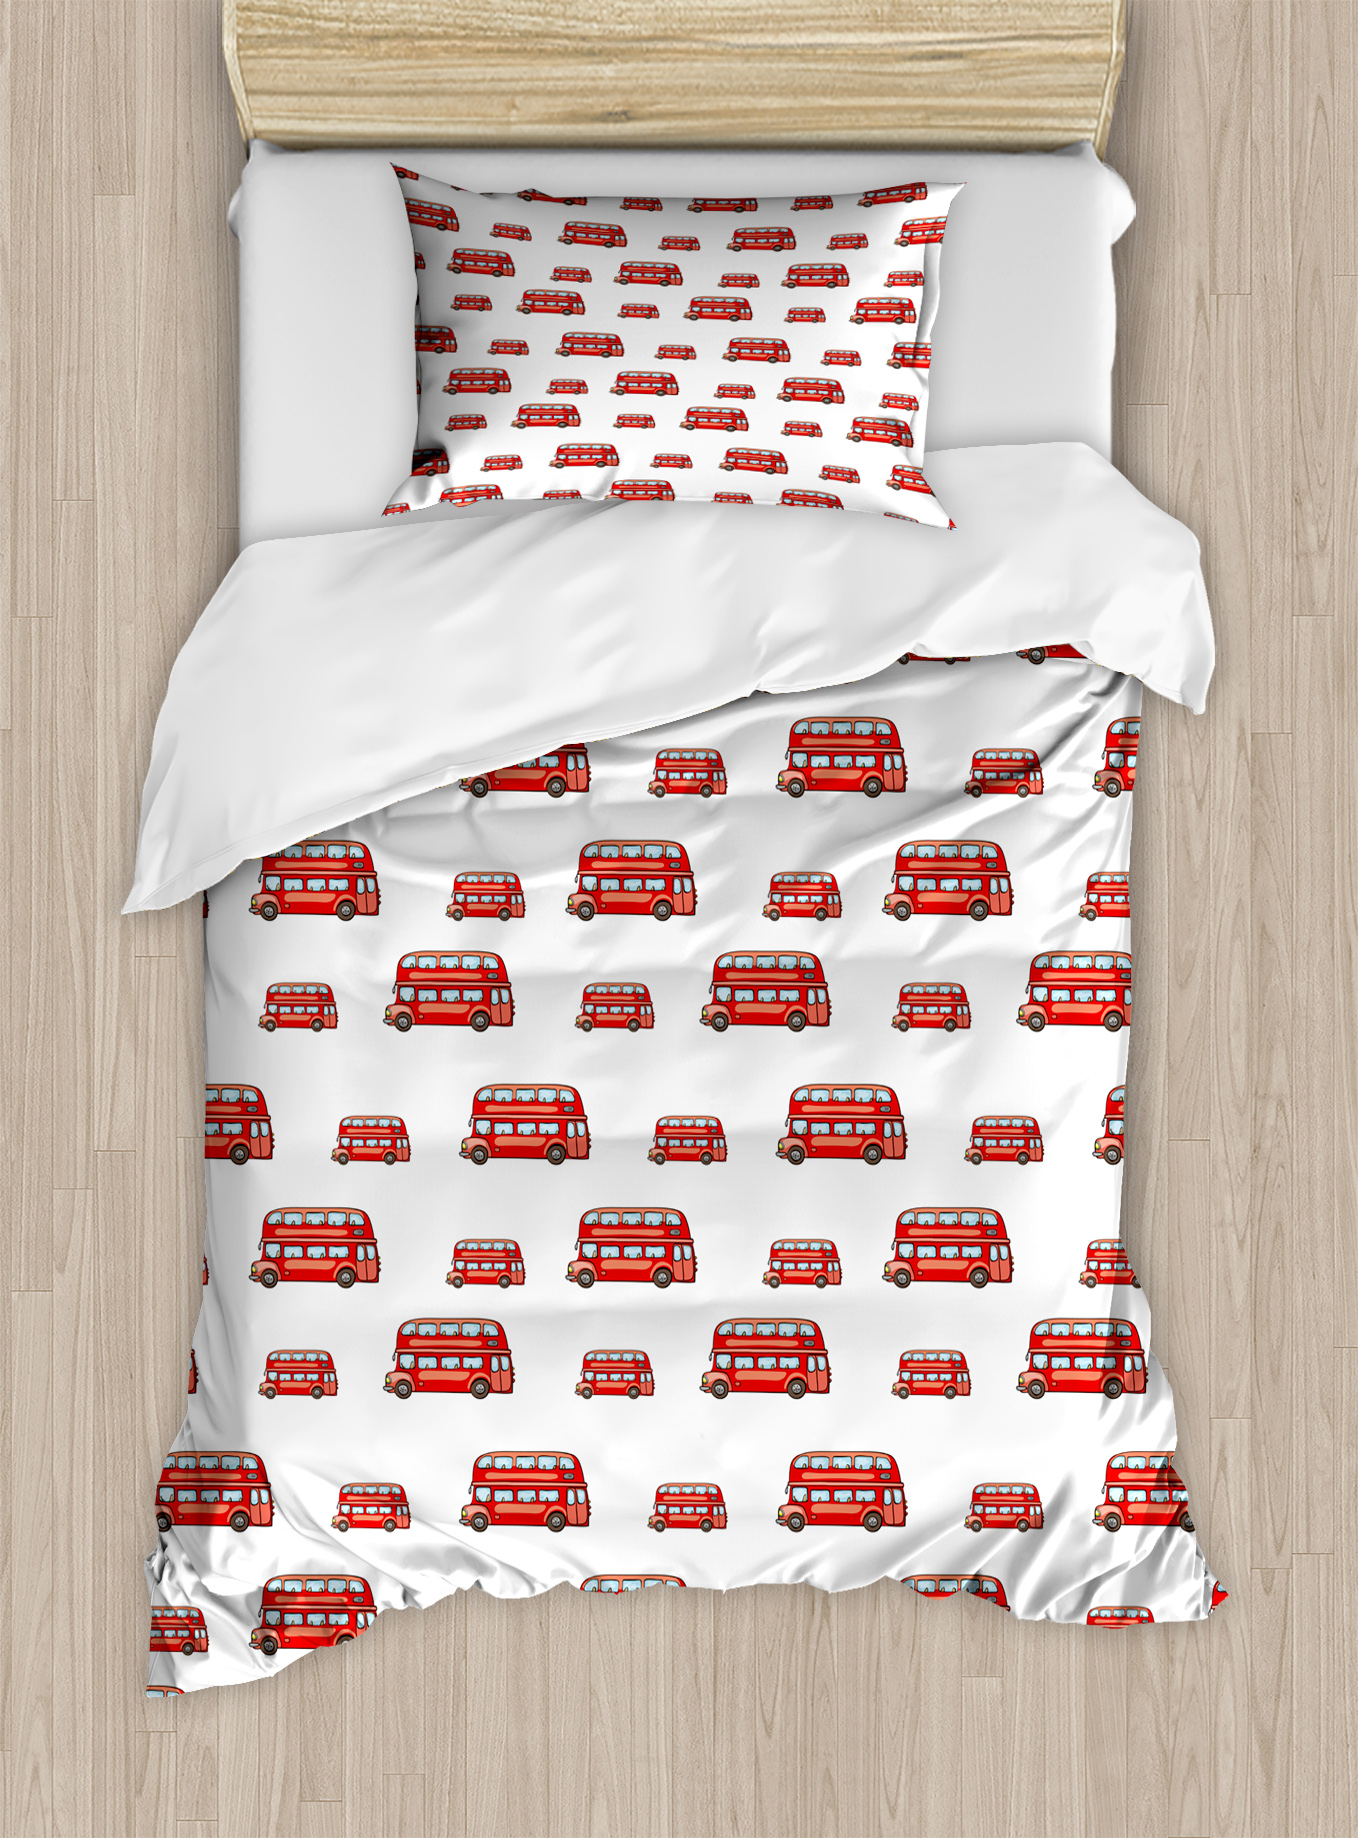 London Twin Size Duvet Cover Set, Funny Cute Kids Boys Toy Double Decker Bus... by Kozmos